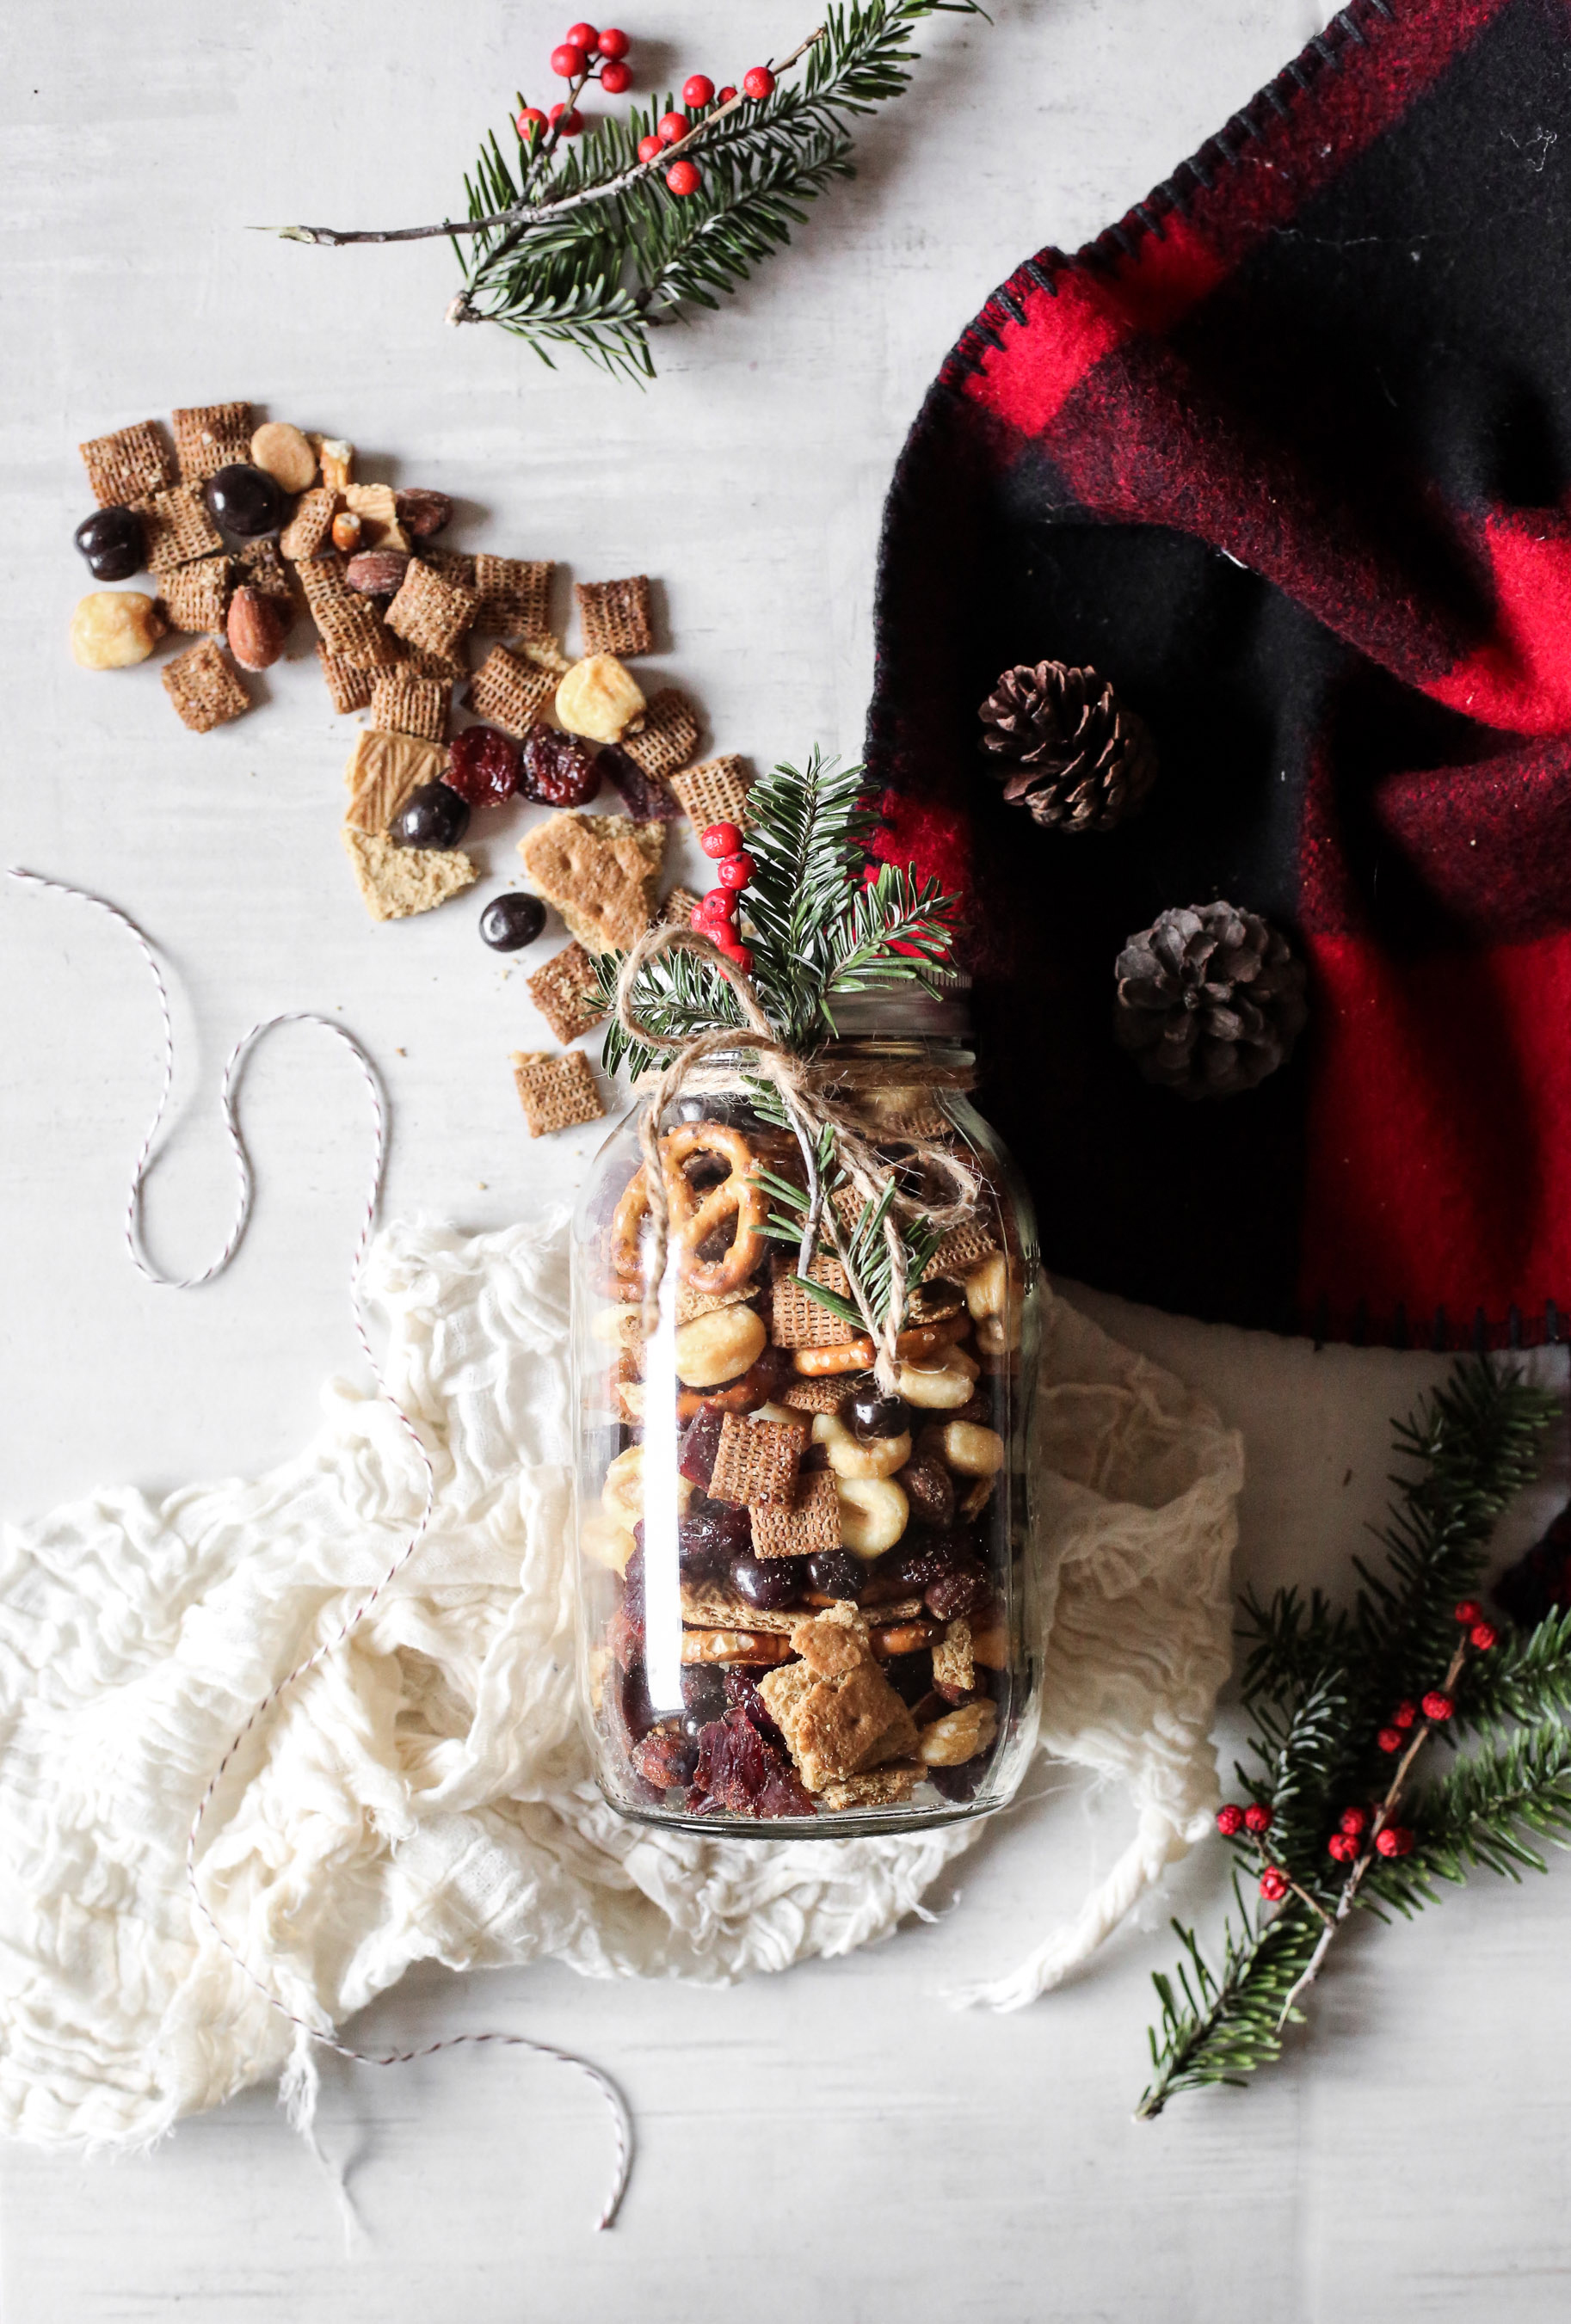 MOUNTAIN TRAIL MIX - A trail mix that's equal parts smokey, crunchy, spicy and sweet aka what you'd want to be eating in a cabin, on a mountain trail, or, ya know, just at a cozy Christmas party. This can be made over a week in advance, but it might not last a full week in your house (It didn't in ours.) so plan accordingly if you're making it in advance for a party.